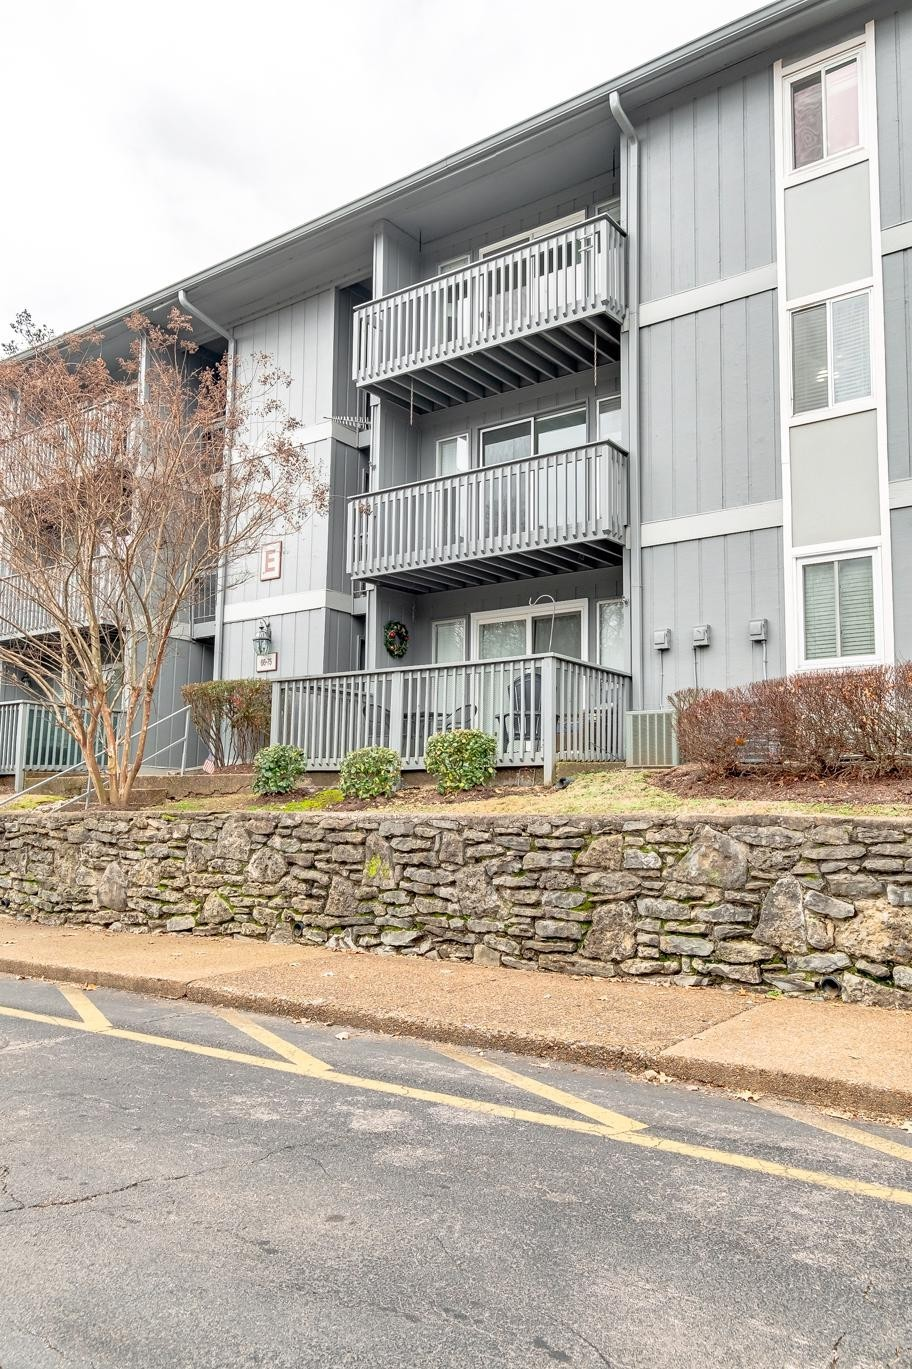 21 Vaughns Gap Rd Apt 71, Belle Meade, Tennessee